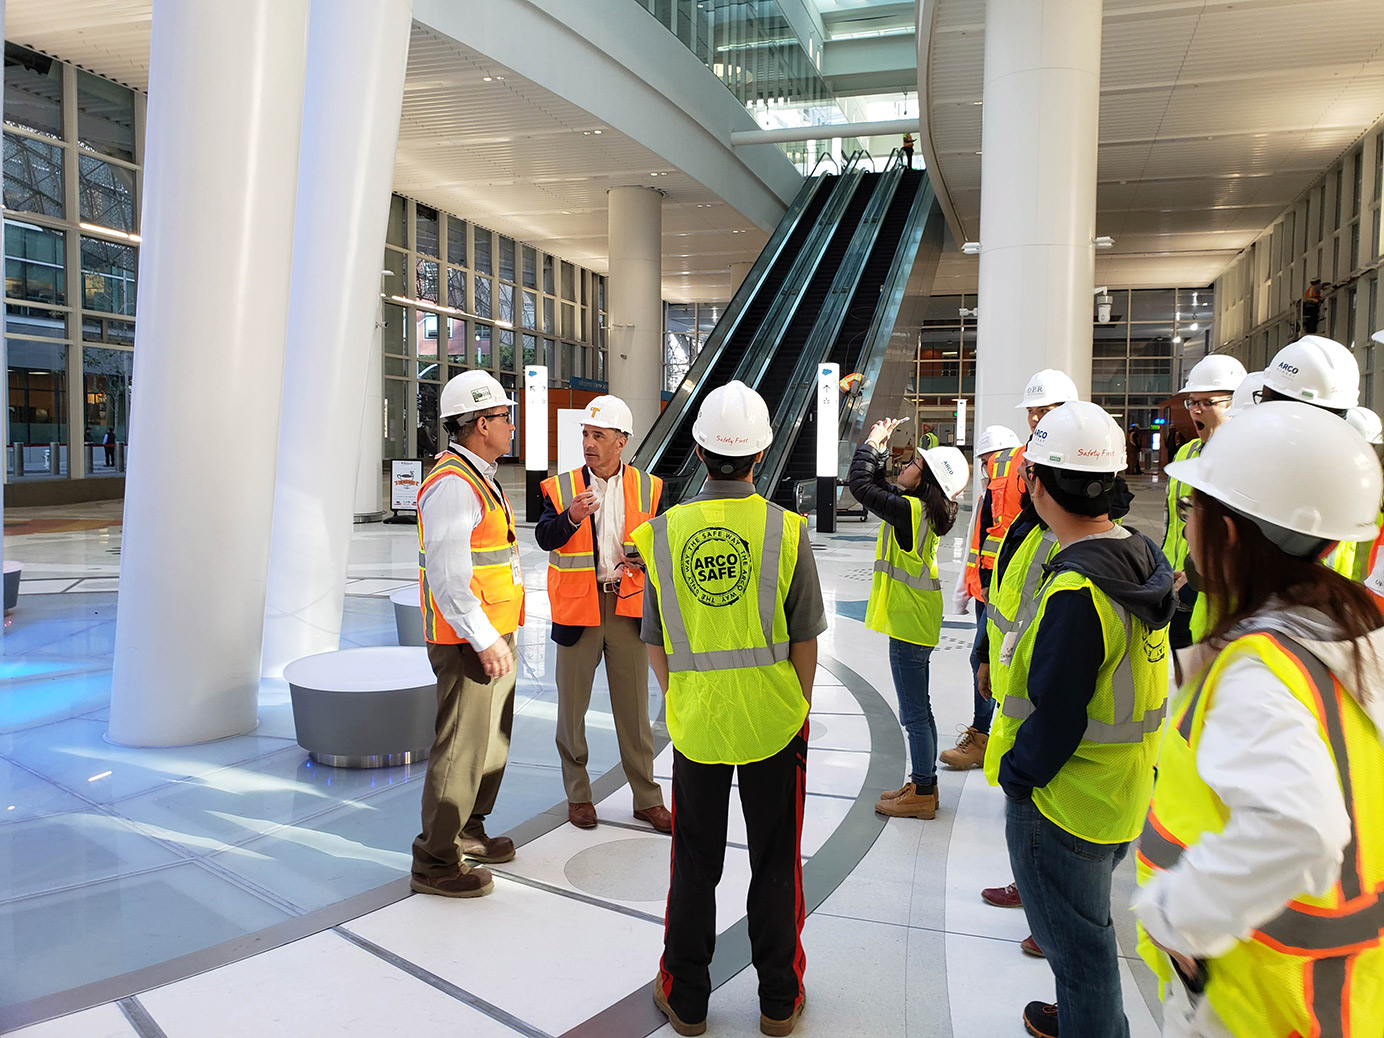 People in hard hats and safety vests stand in a modern building